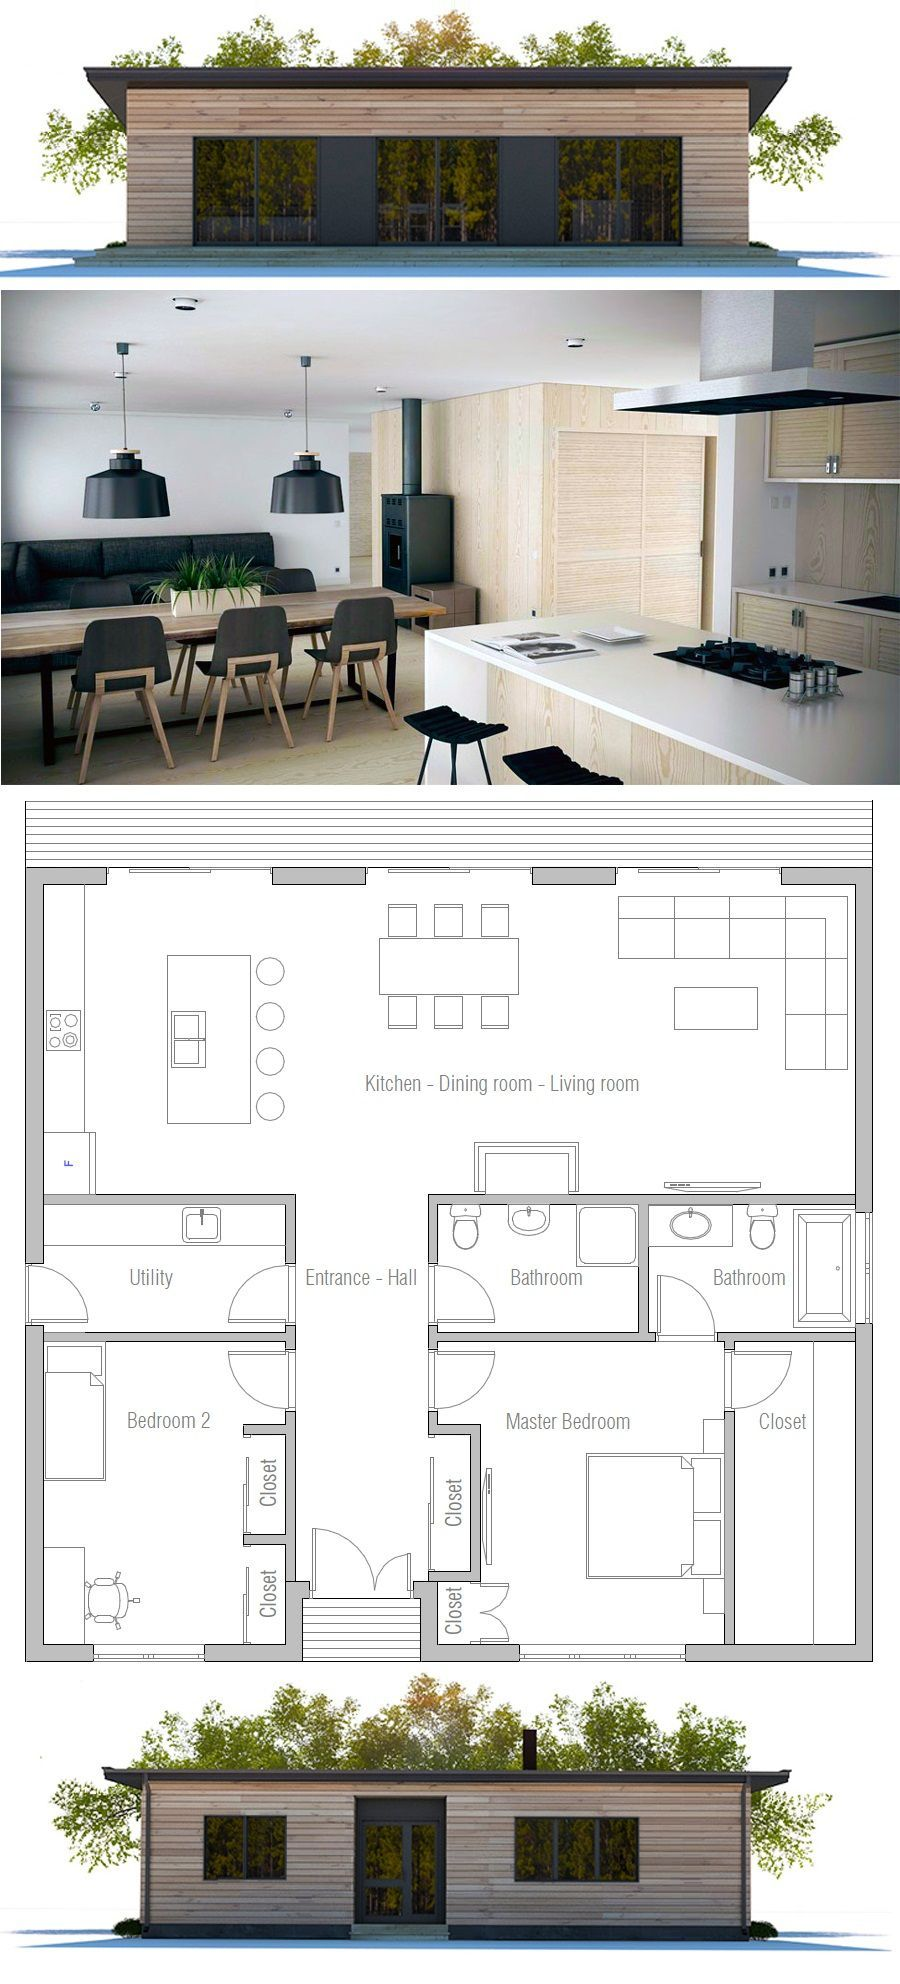 10 Storage Organizer Ideas For Small Bedroom Simphome Courtyard House Plans Two Bedroom House Bedroom House Plans